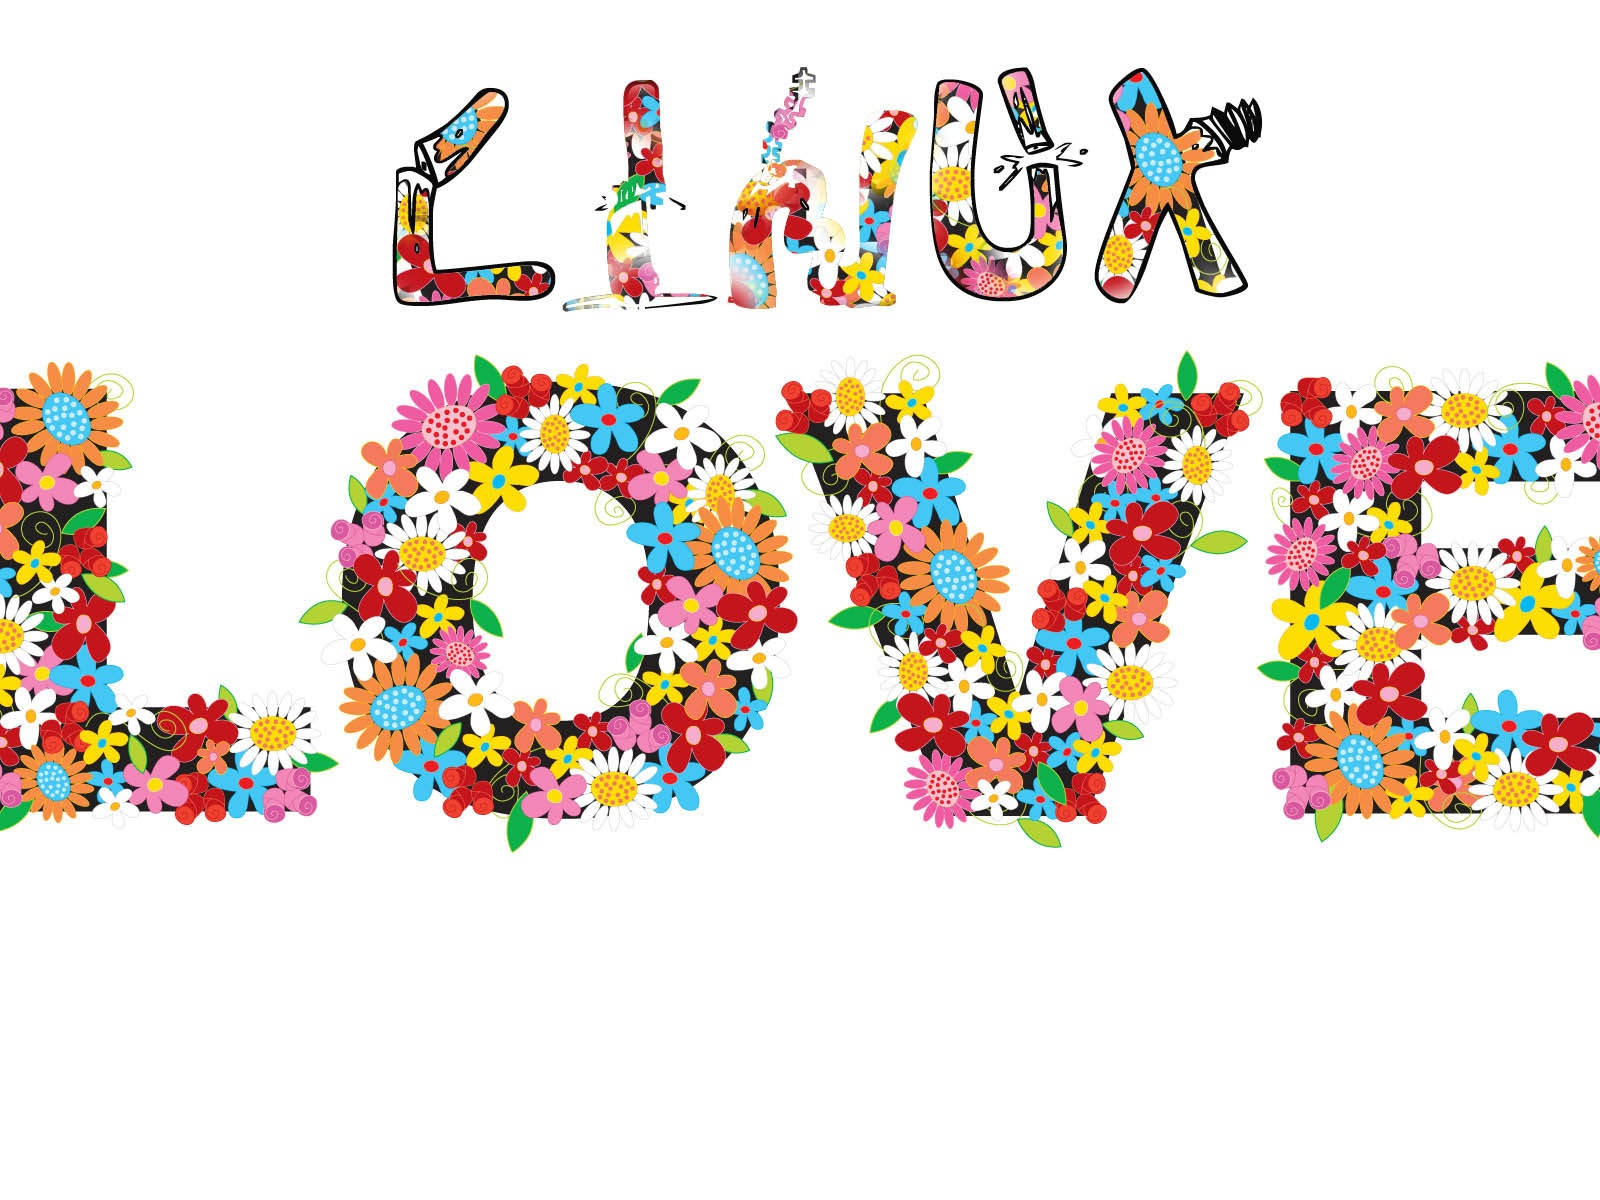 click to free download the wallpaper--Images of Nature Landscape, Linux Love, All Letters Surrounded by Flowers, White Background